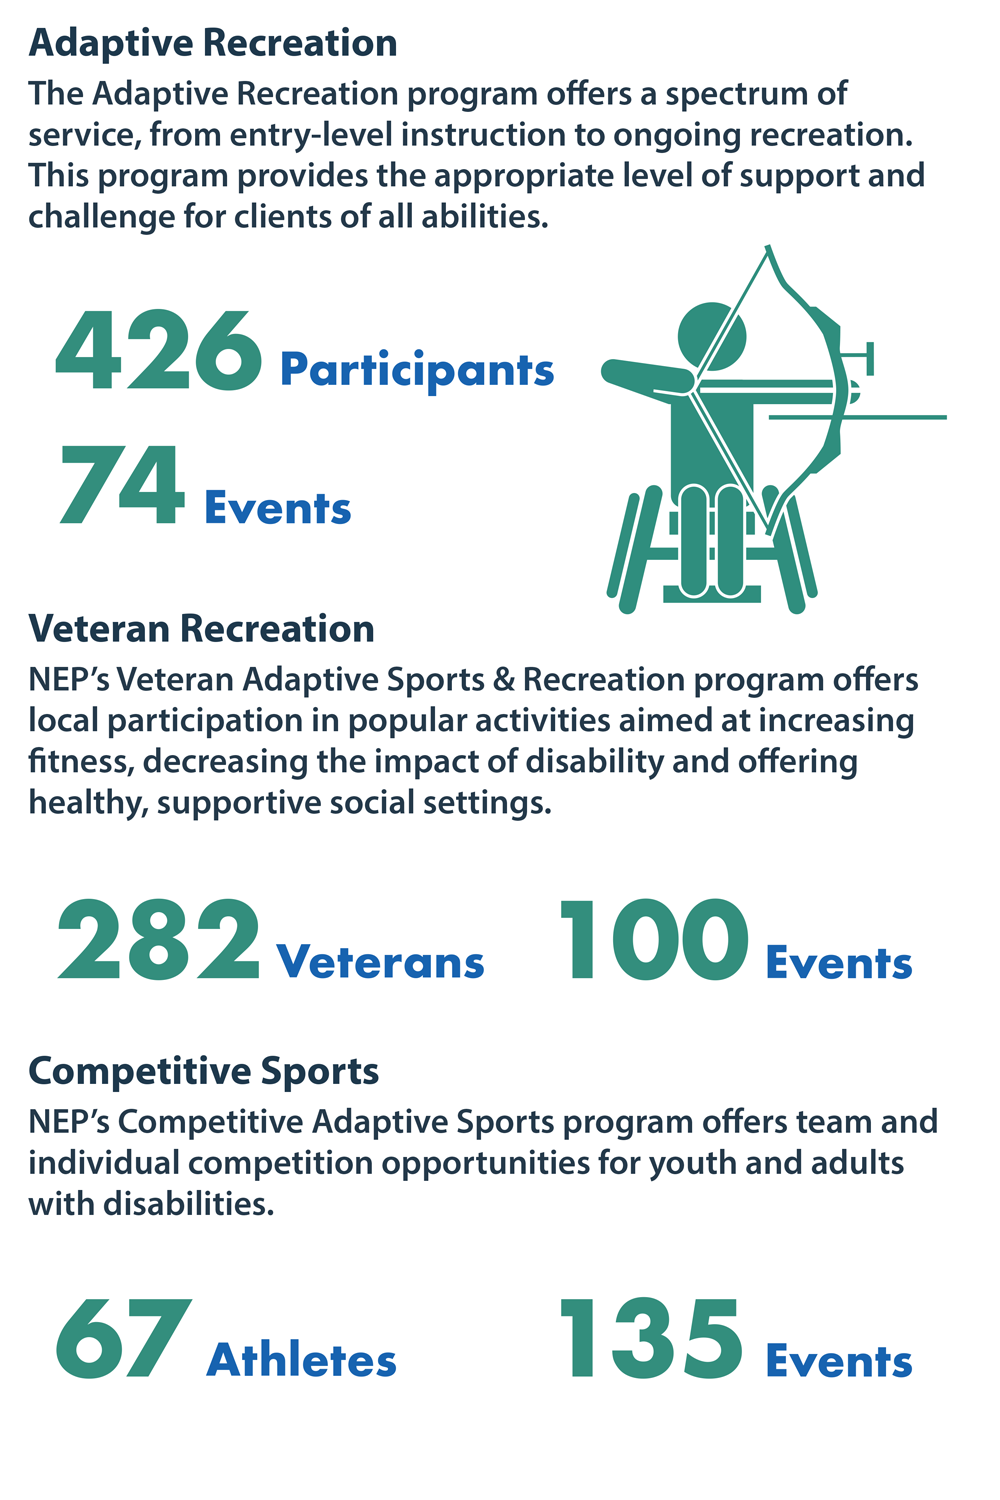 Adaptive & Veteran Recreation participation and events